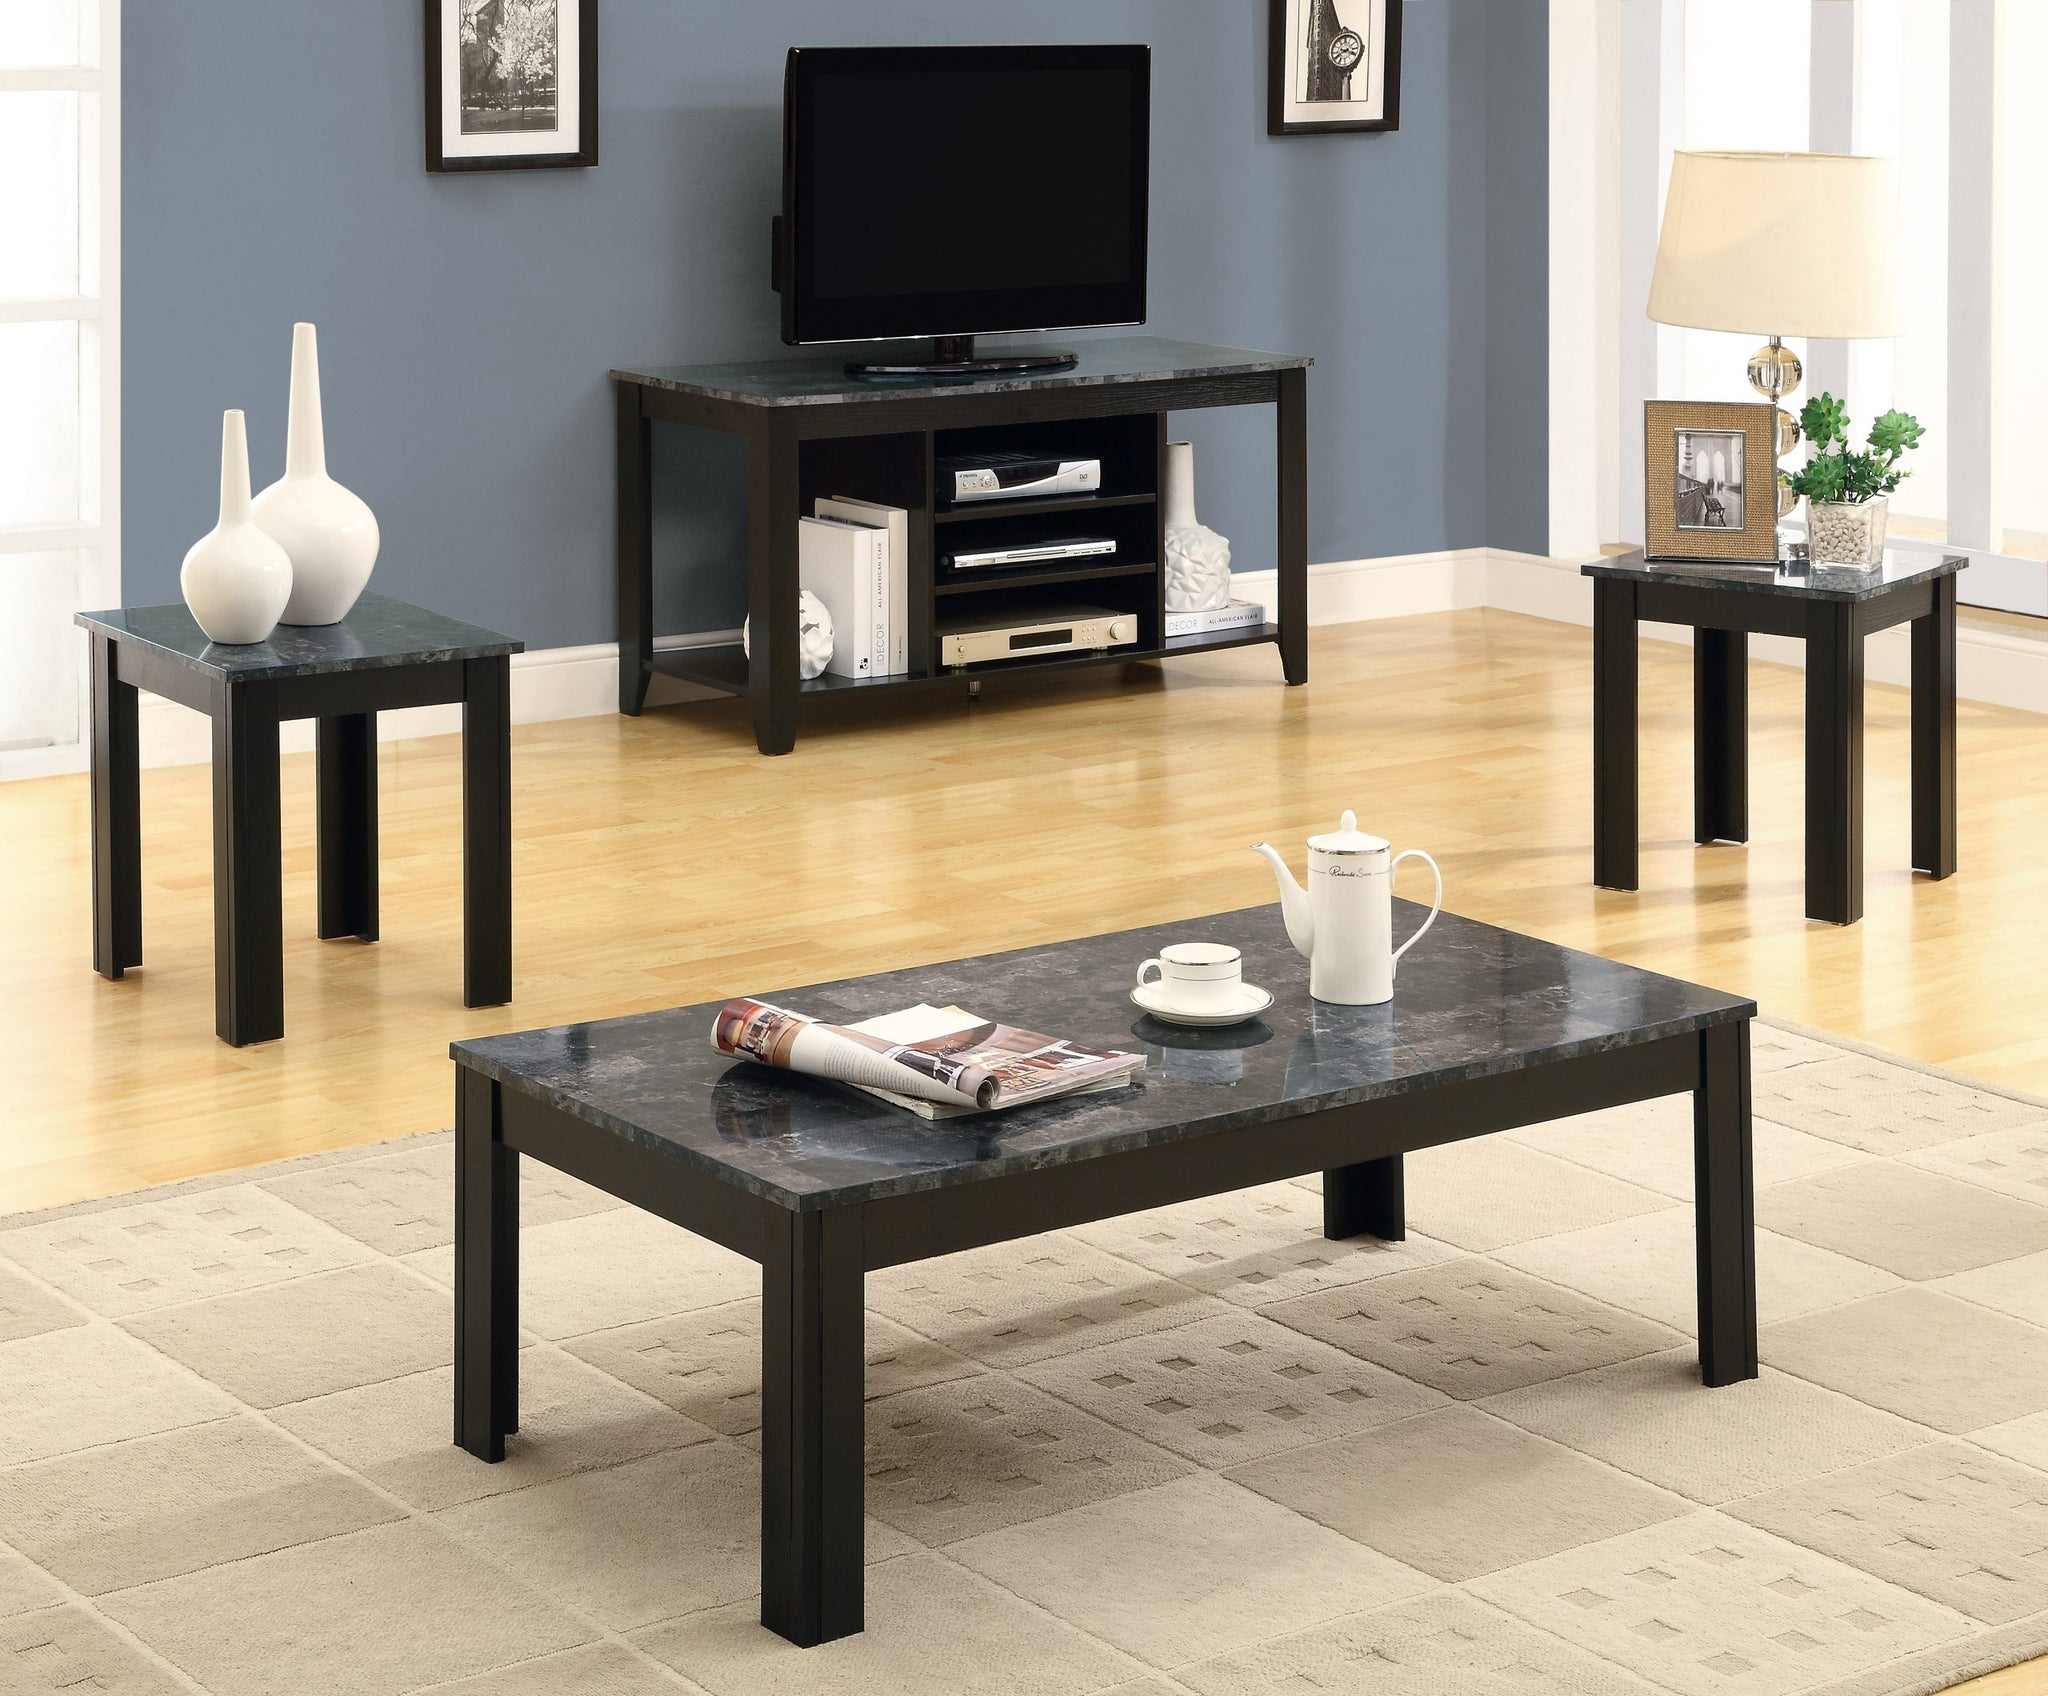 I 7843P-TABLE SET - 3PCS SET / BLACK / GREY MARBLE-LOOK TOP